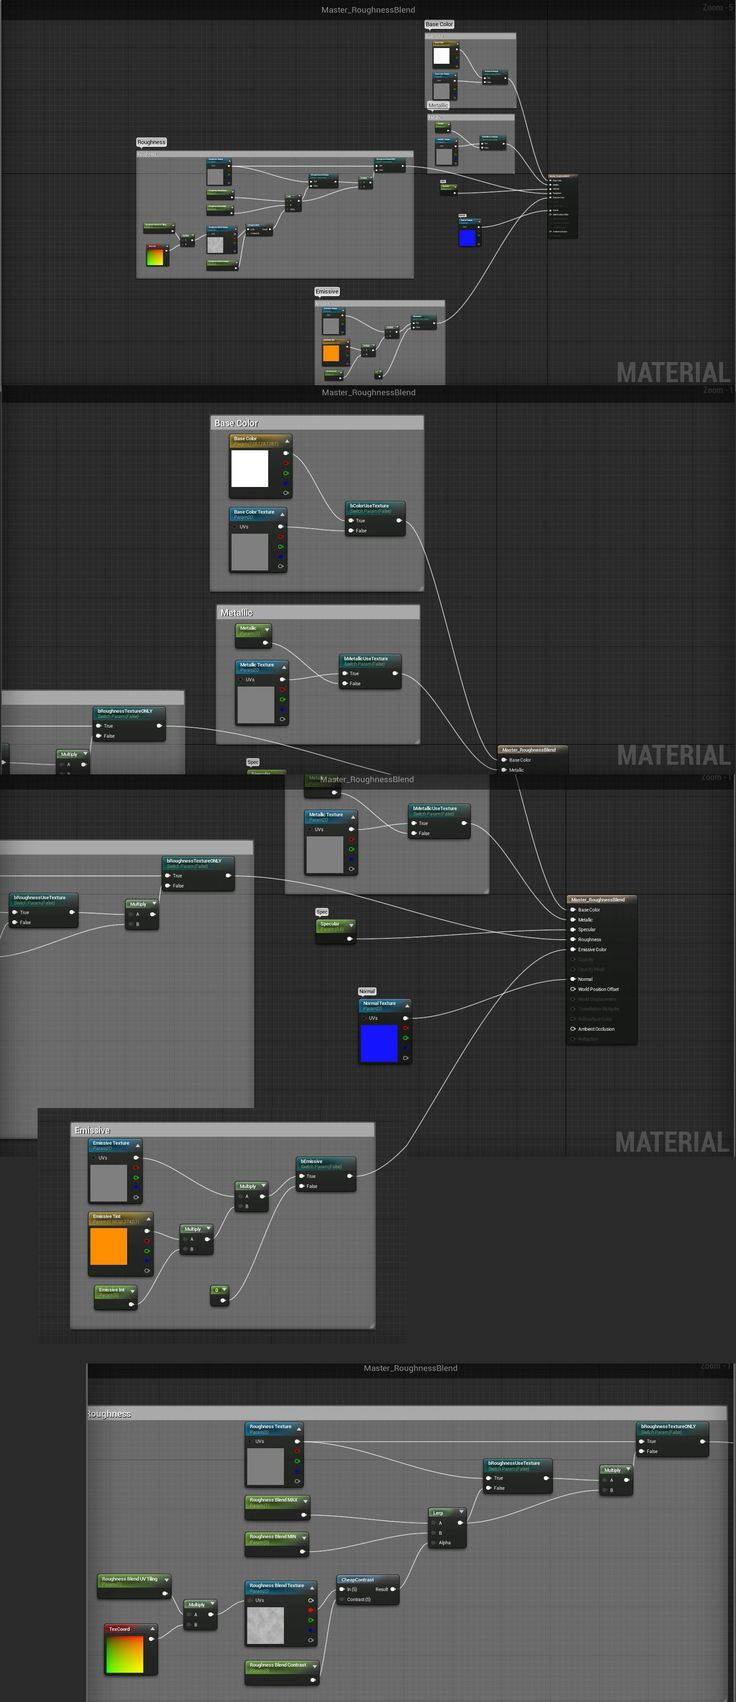 14 best unreal texture ideas images on pinterest unreal engine ue4 high tech environment page 2 polycount forum malvernweather Image collections